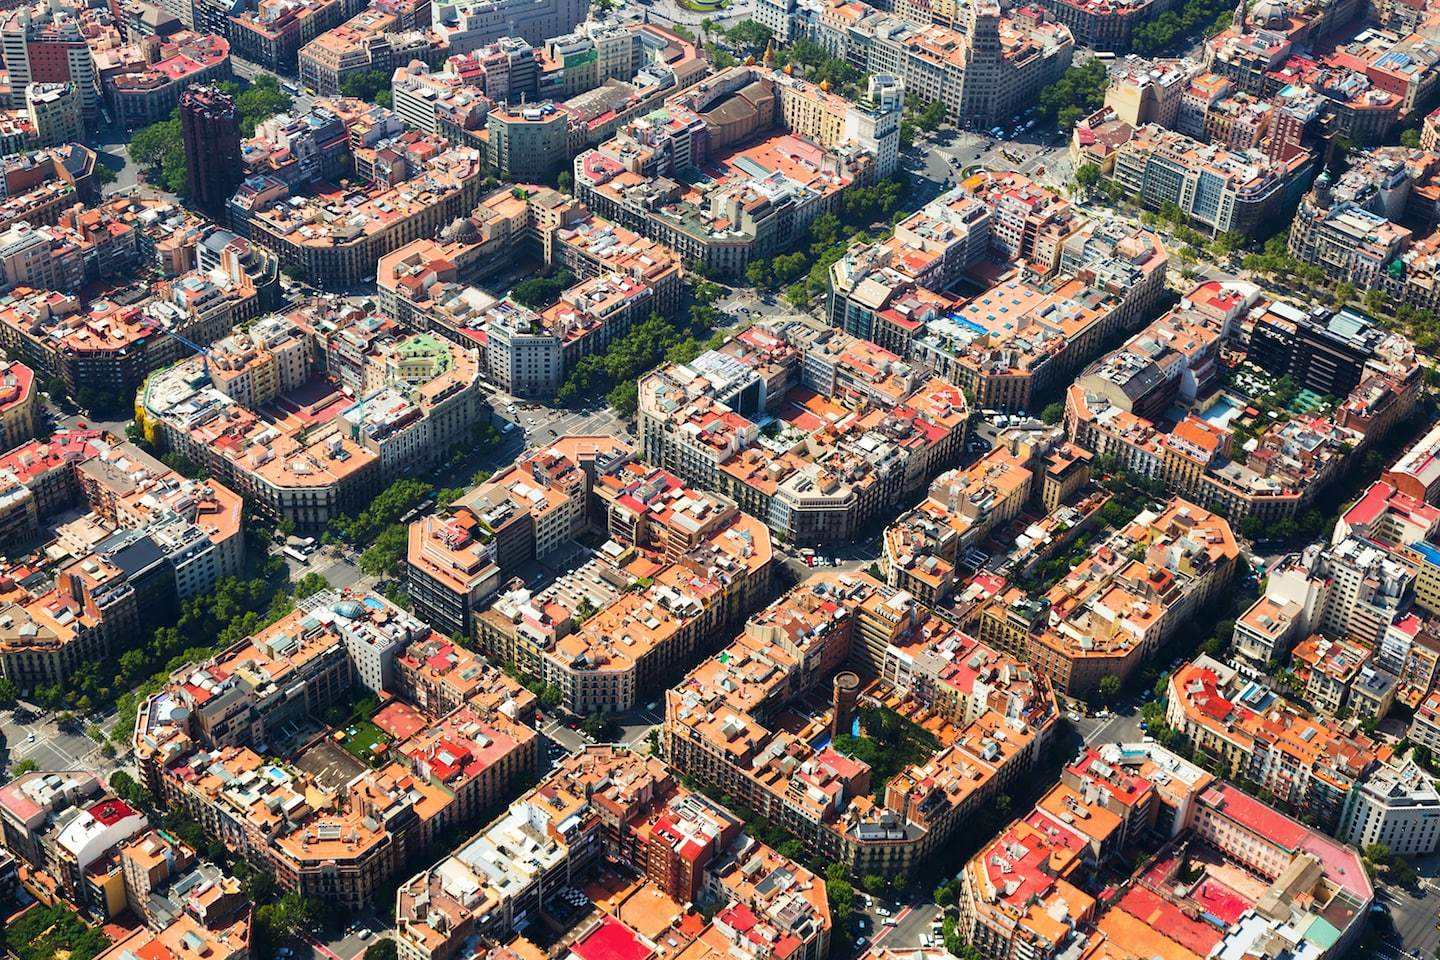 residential home formations in barcelona, spain